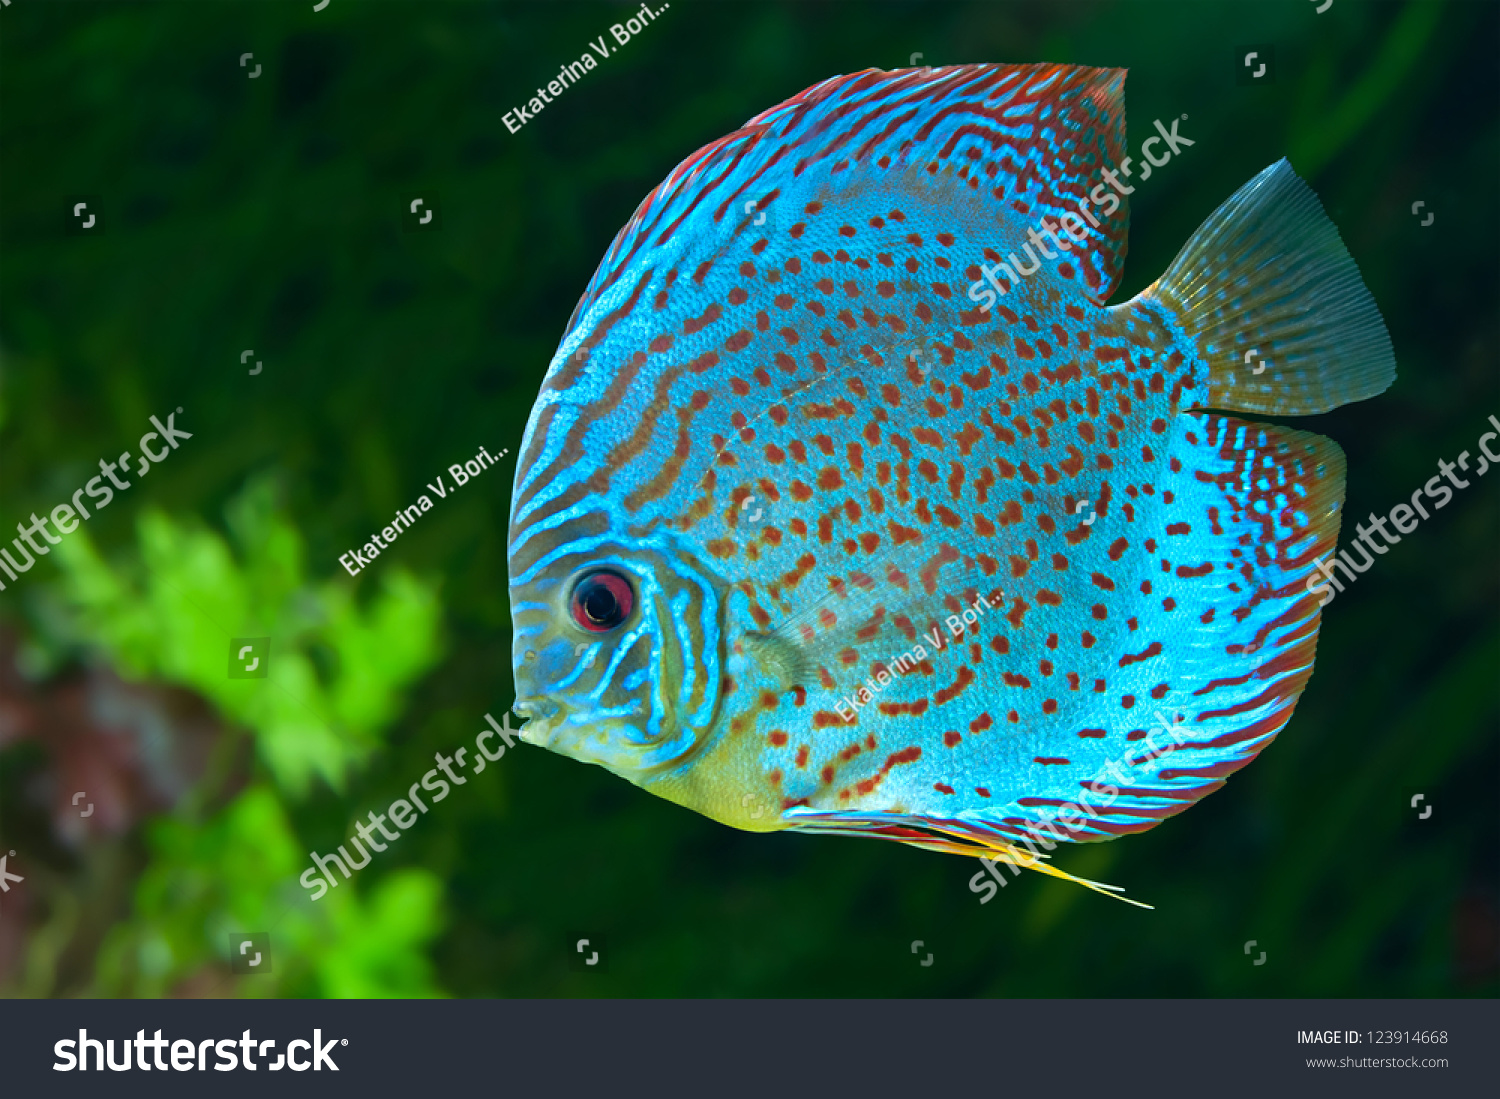 Discus symphysodon spp freshwater fish native to the for Fish in the amazon